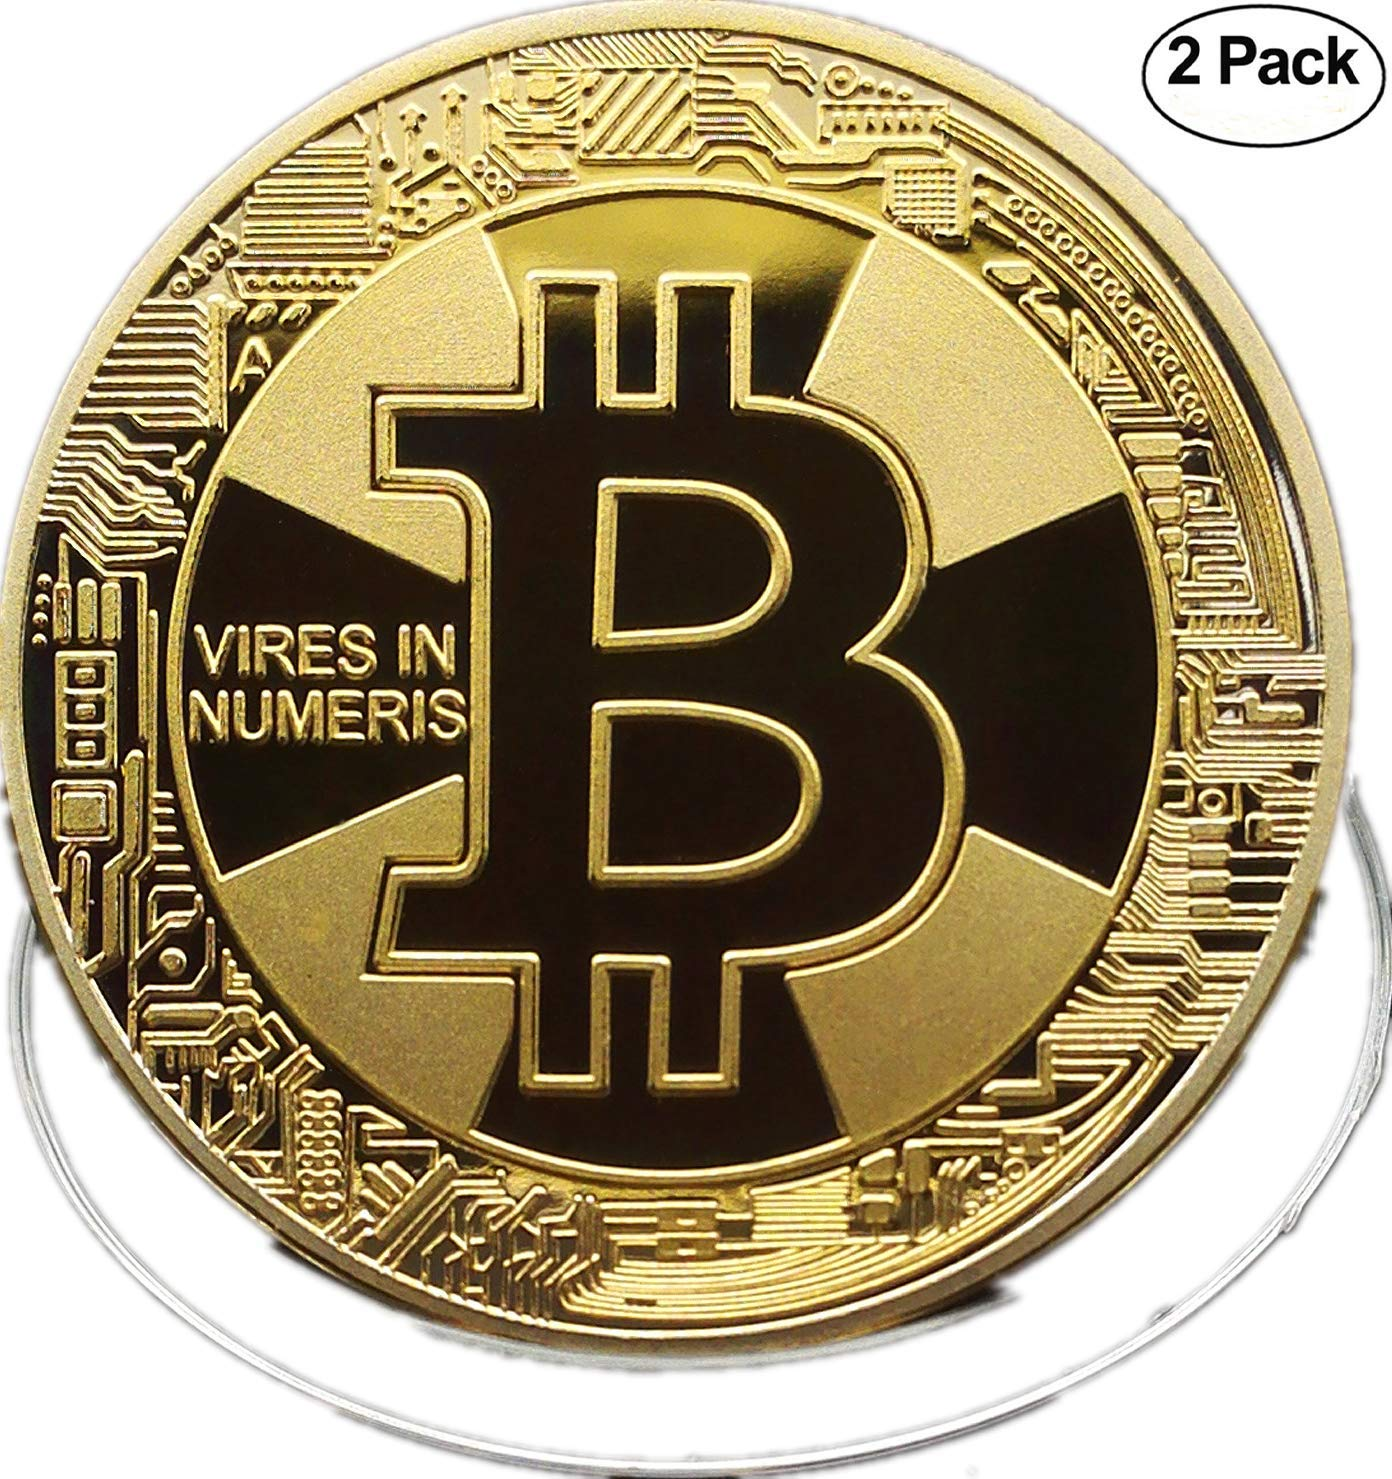 BITCOIN Coin, 18K GOLD, [2-pack] Deluxe Collector's Set | Featuring the Limited Edition Original Commemorative Tokens | Each Coin is enclosed in a Display Case Baseshop